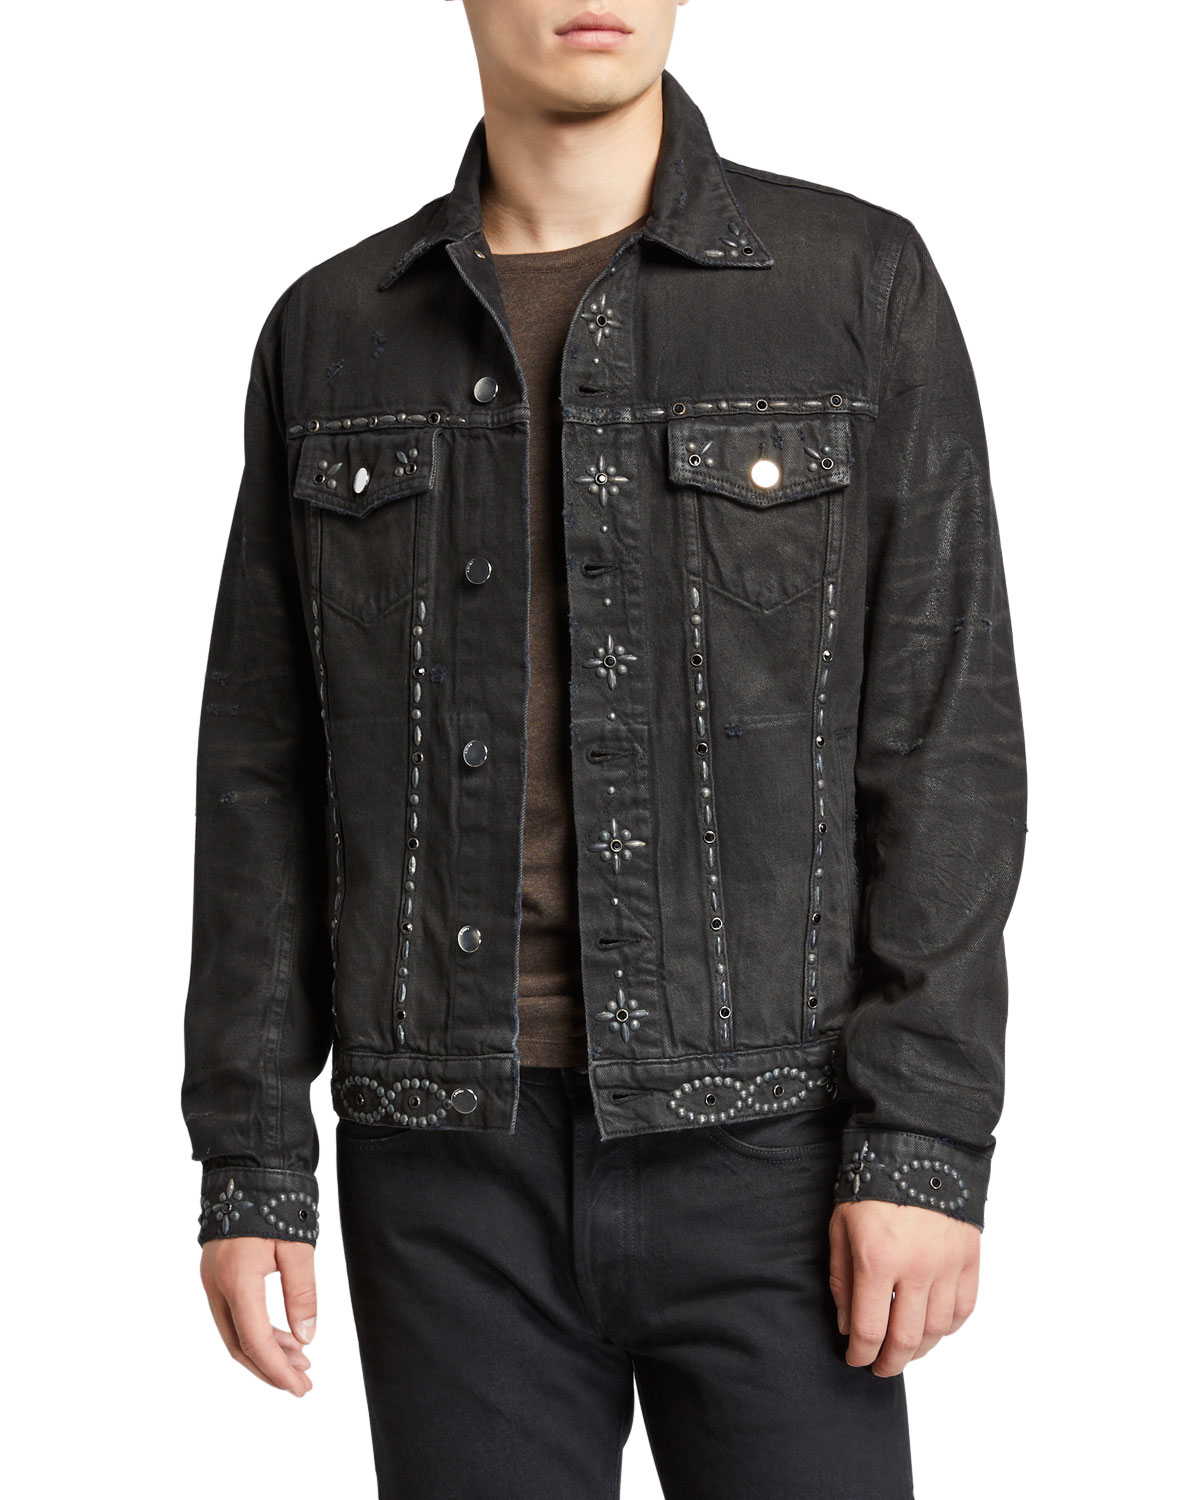 Amiri Jackets MEN'S STUDDED DENIM JACKET